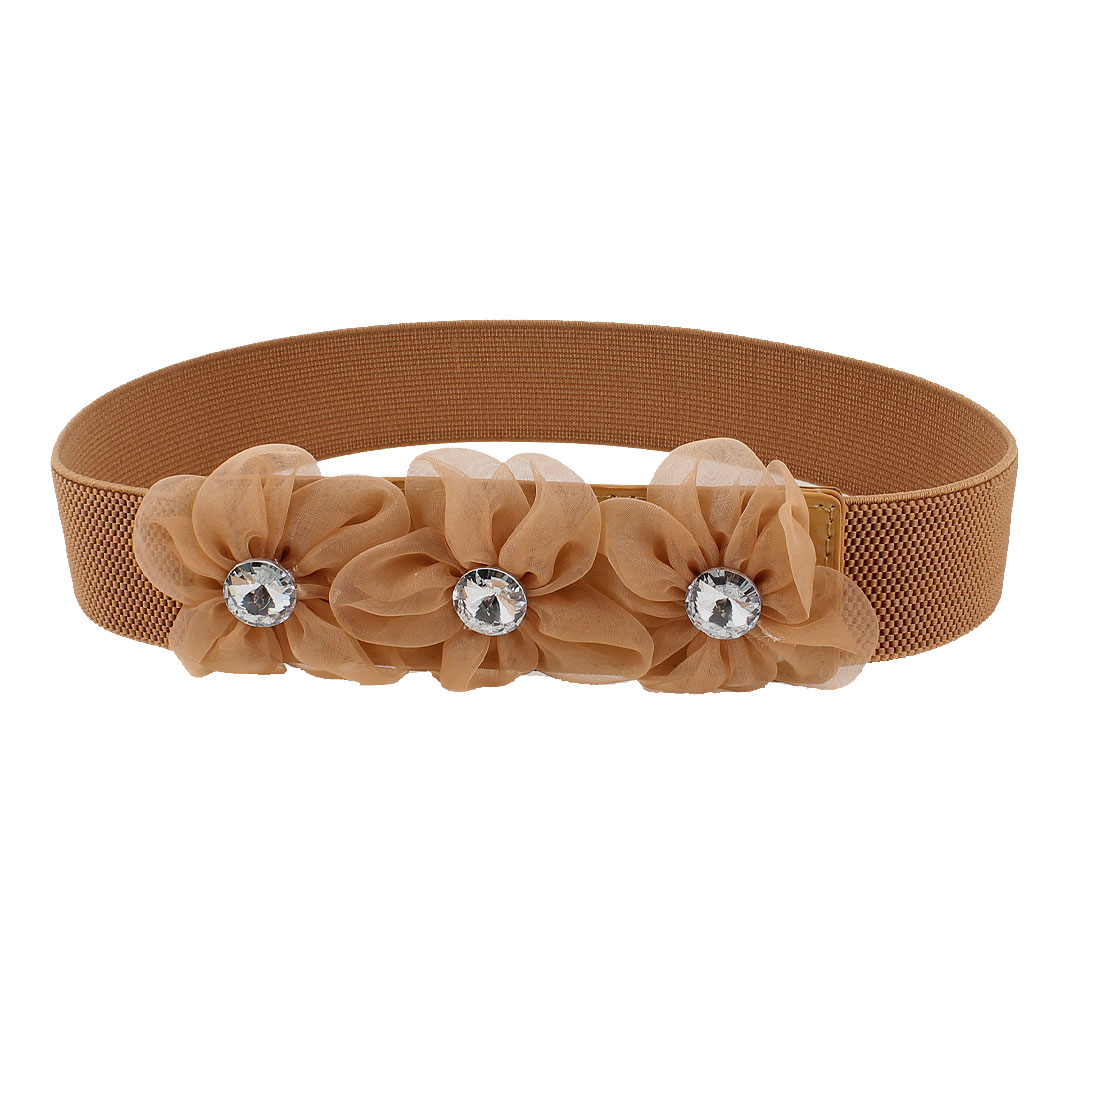 Lady Faceted Crystal Inlaid Brown Organza Flower Decor Elastic Waist Band Belt